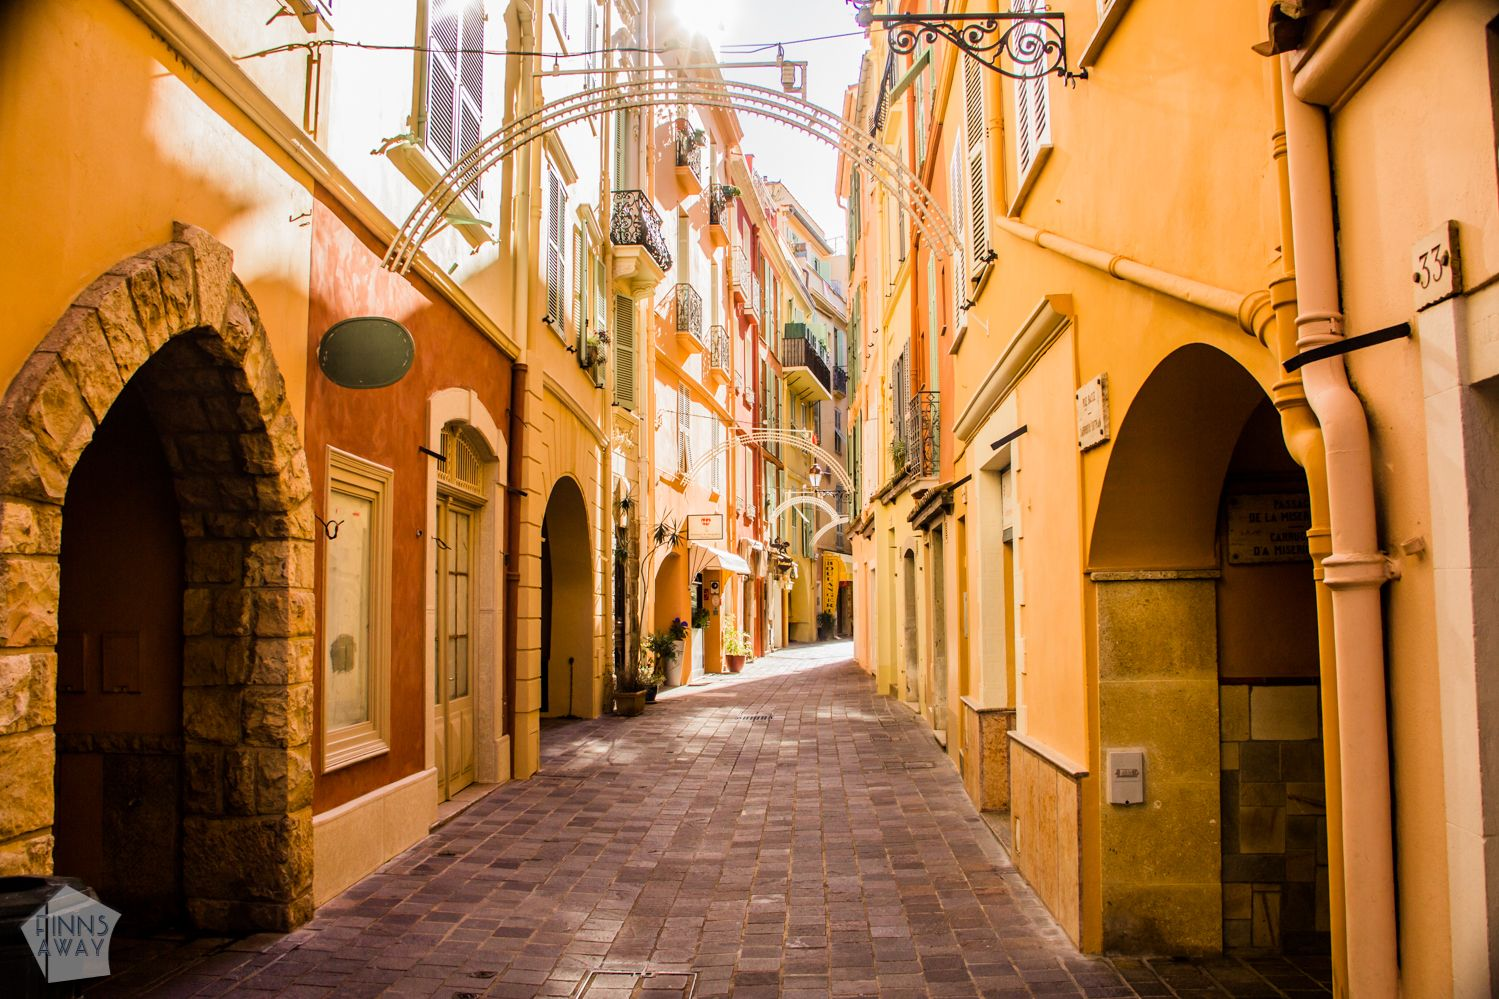 Alley in Monaco-Vile | Introducing the tiny, wealthy and luxurious Monaco in French Riviera. | FinnsAway Travel Blog